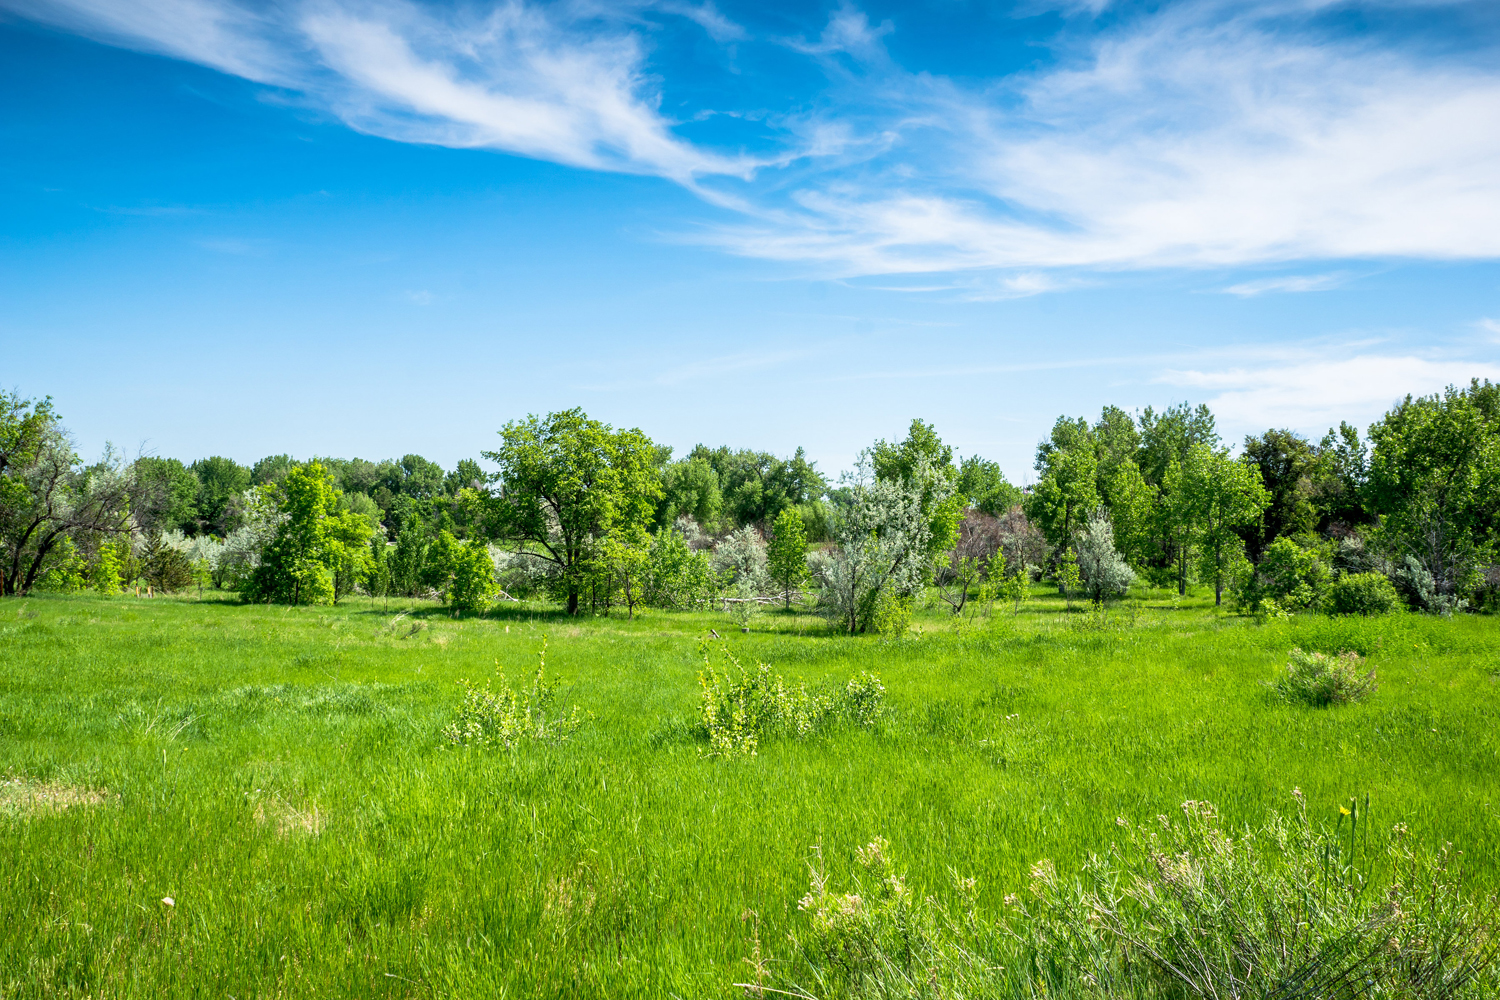 Additional photo for property listing at Greenwood Village's Most Admired Horse Property 5550 S Steele St Greenwood Village, Colorado 80121 United States